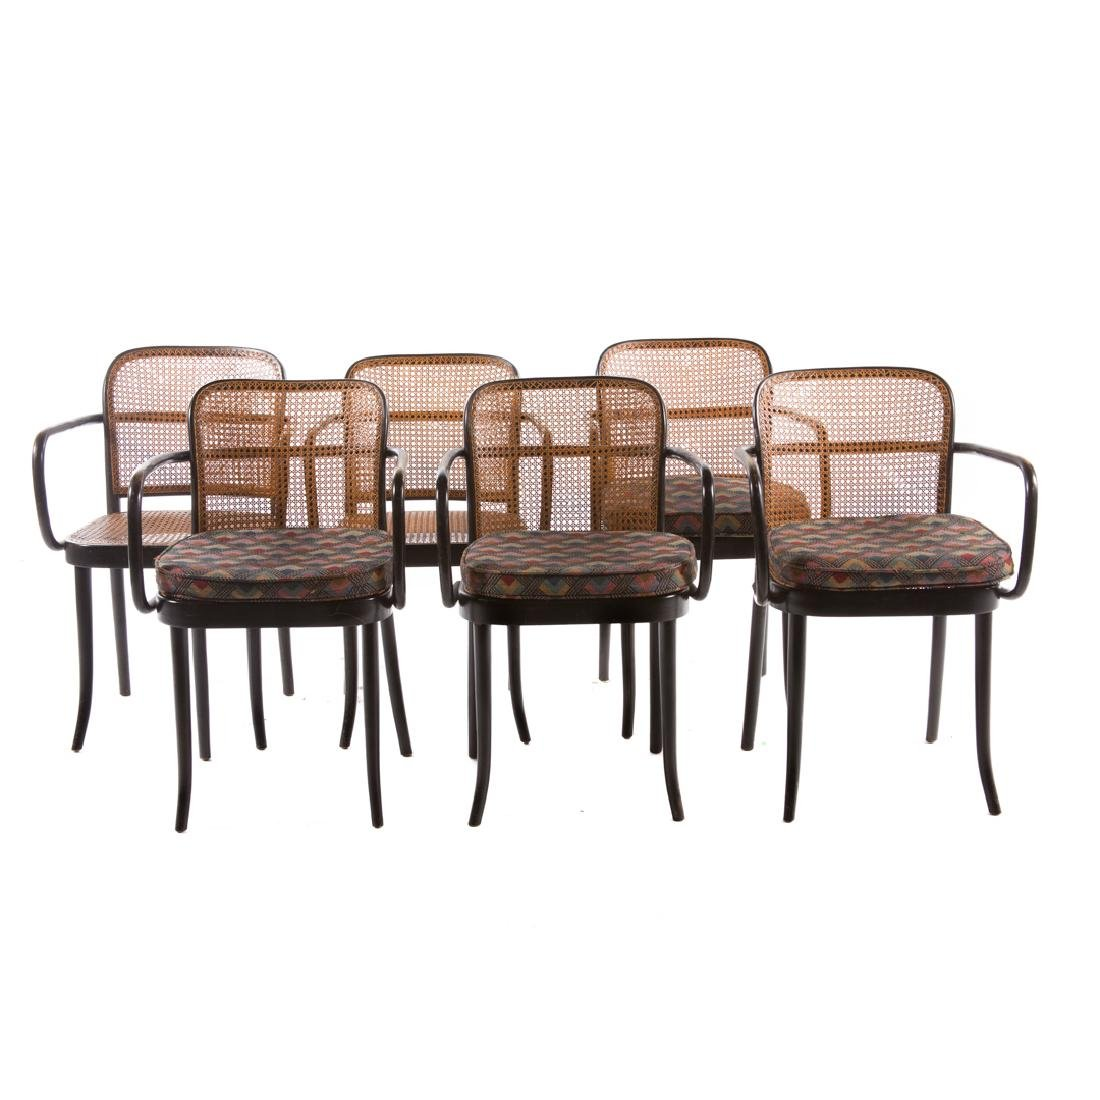 Six Stendig bentwood caned Prague armchairs